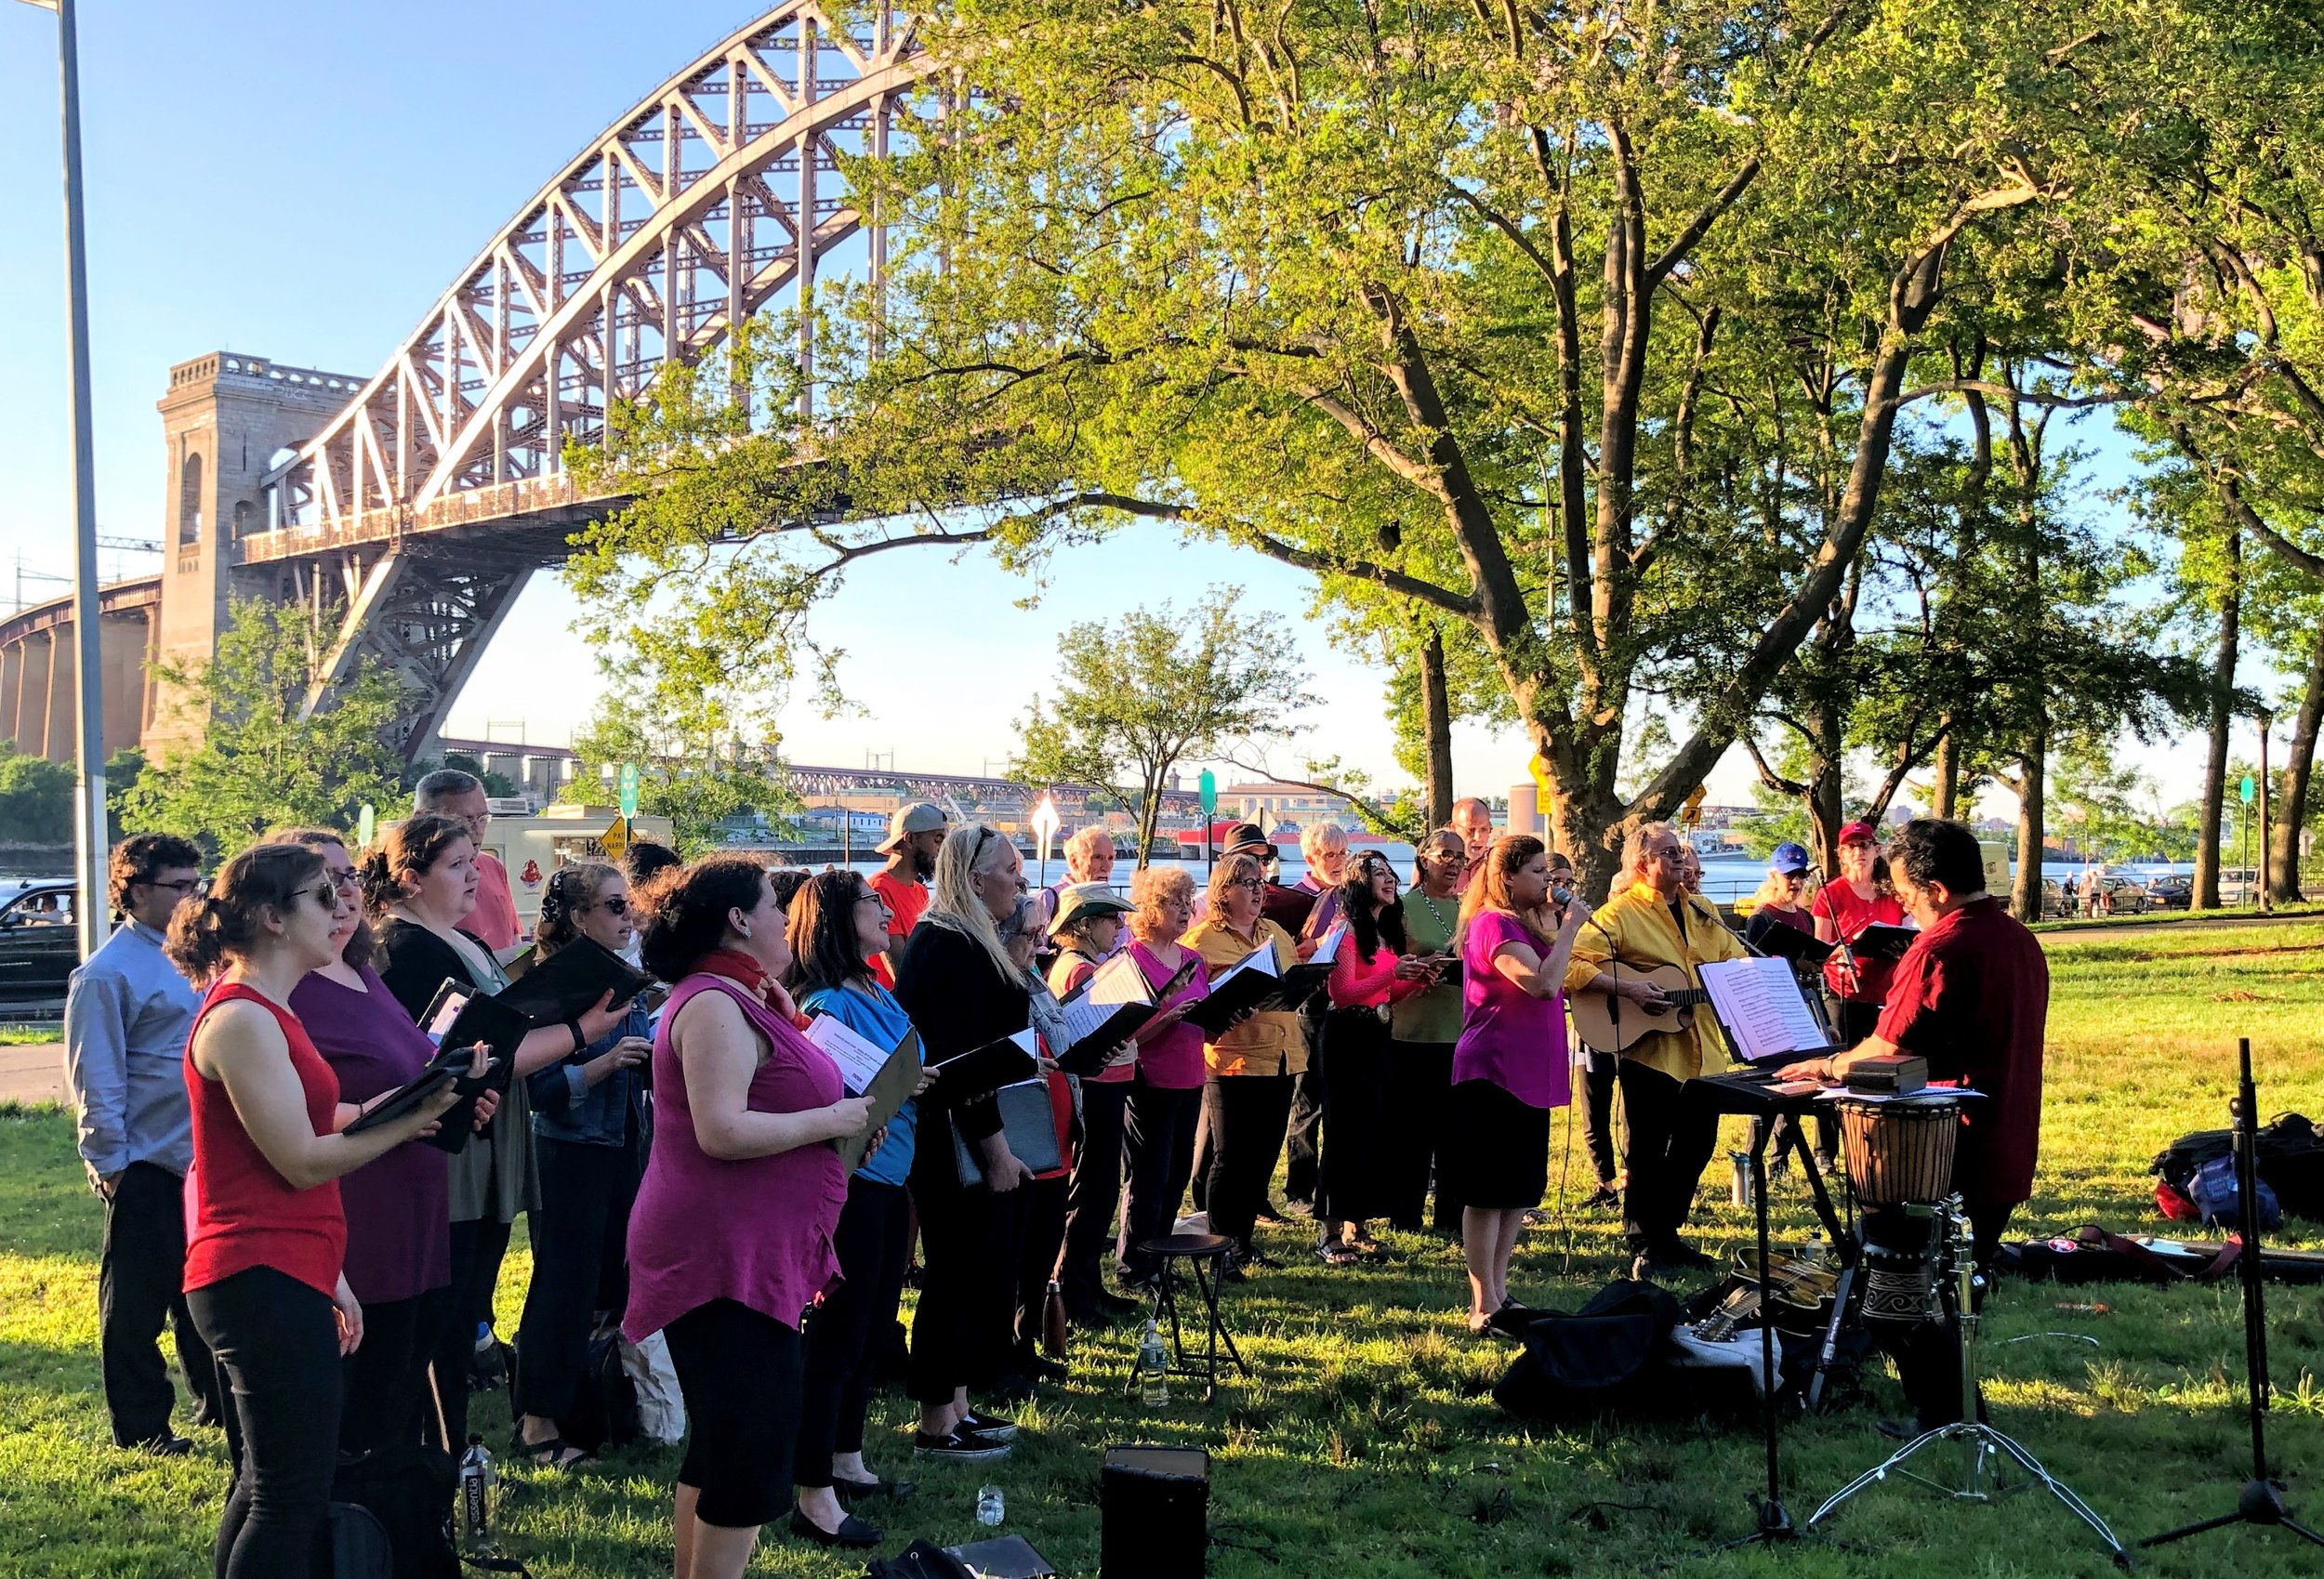 Singing near the East River beneath the Hell Gate Bridge in Astoria Park.